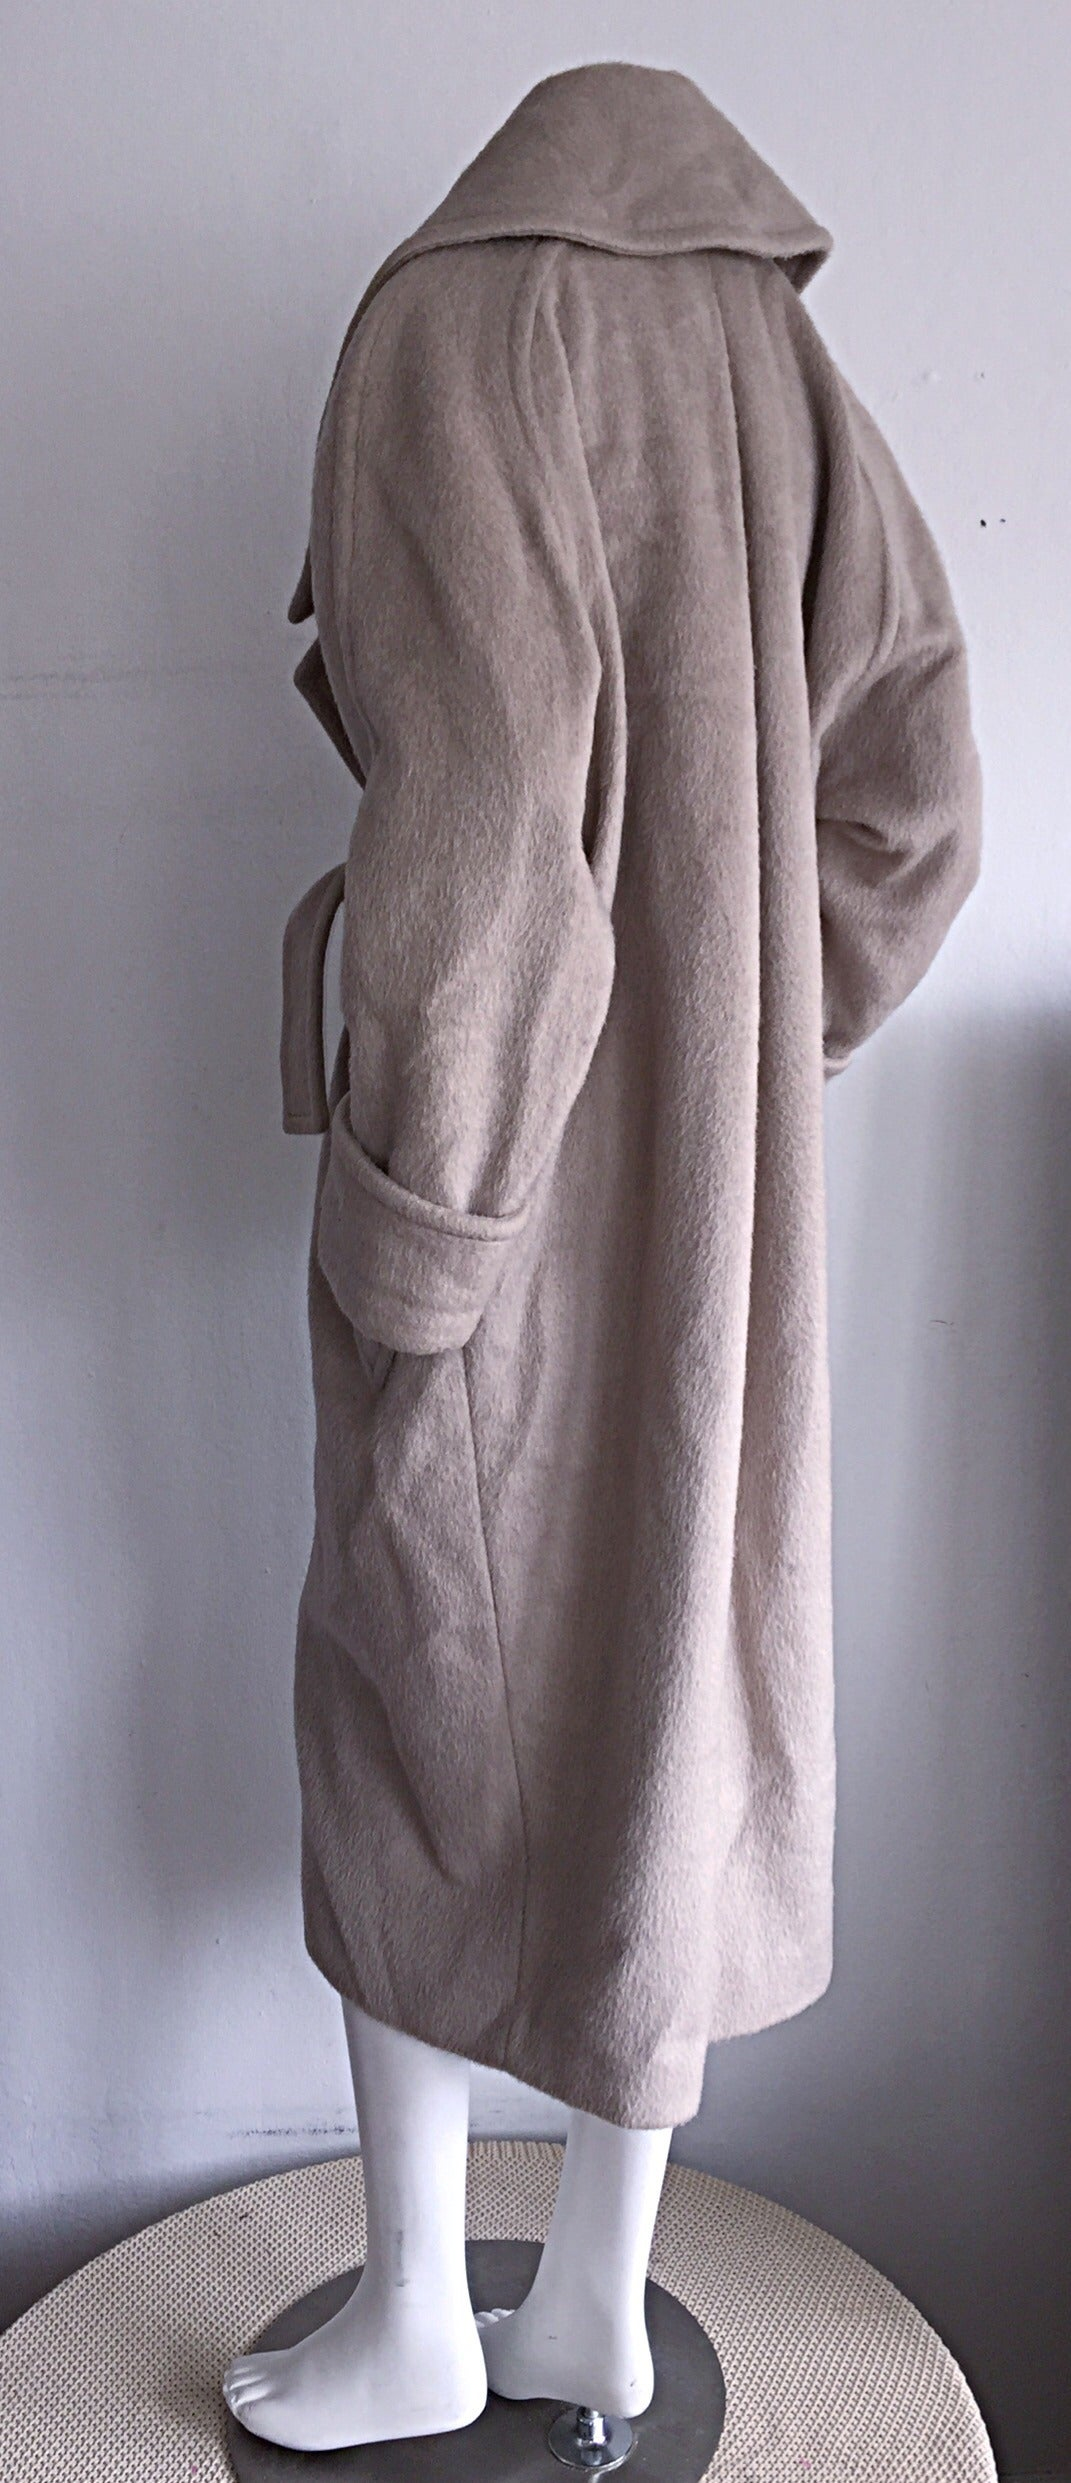 Women's Stylish Vintage Guy Laroche Alpaca + Wool Taupe Wrap Blanket Jacket / Coat For Sale